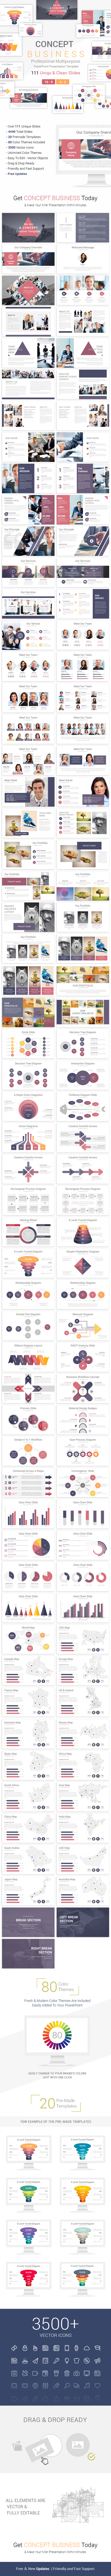 Concept Business PowerPoint Presentation Template - Business PowerPoint Templates